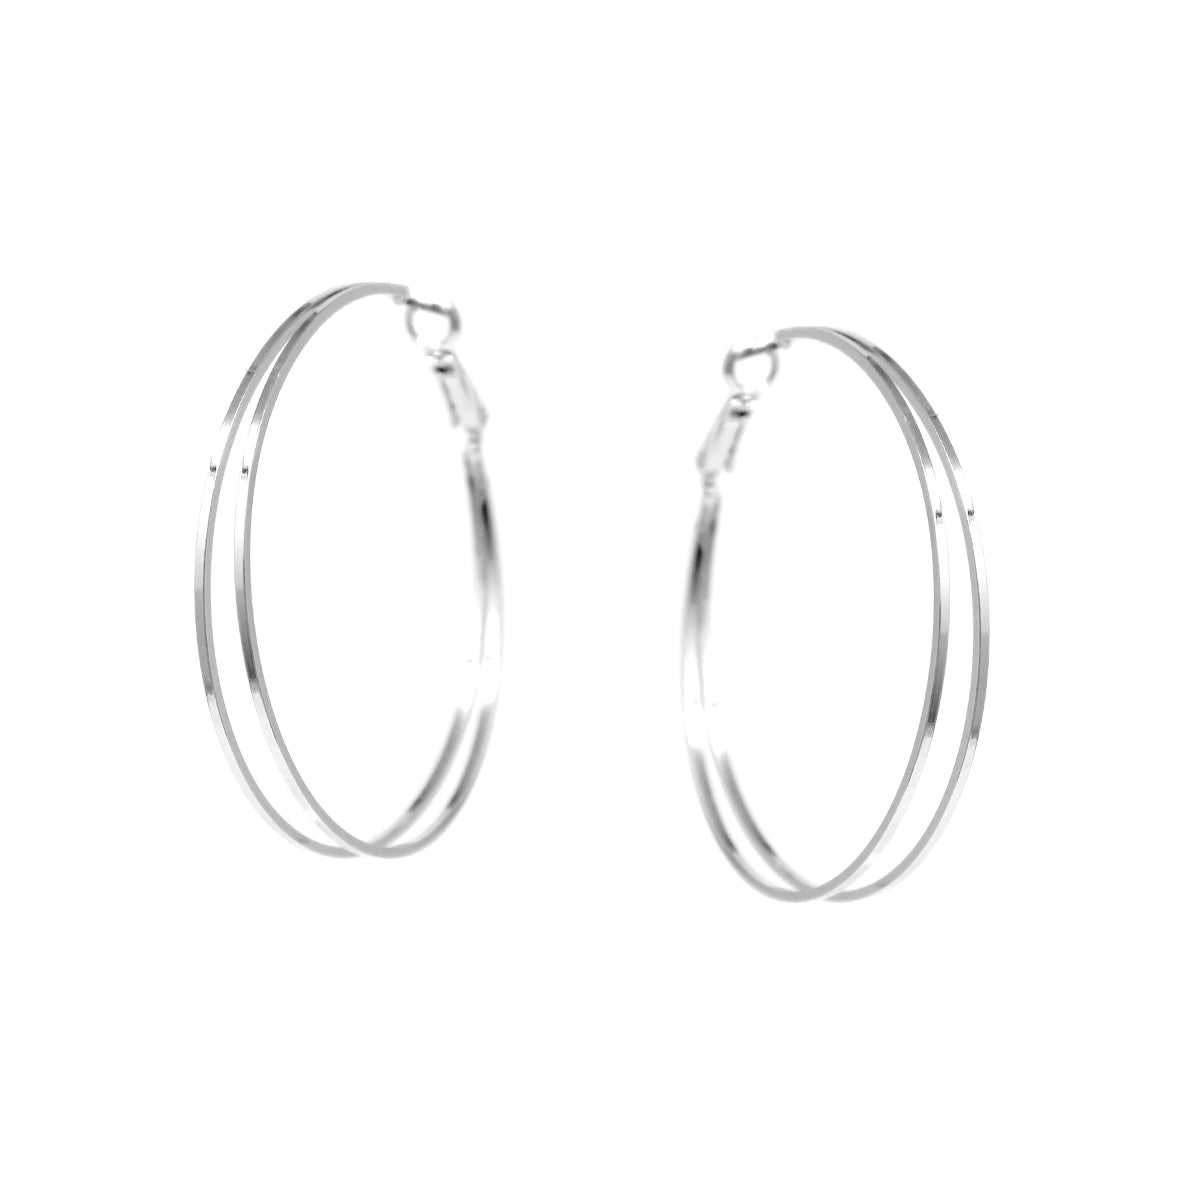 Square Edge Double Layered Hoop Earrings (50 mm)